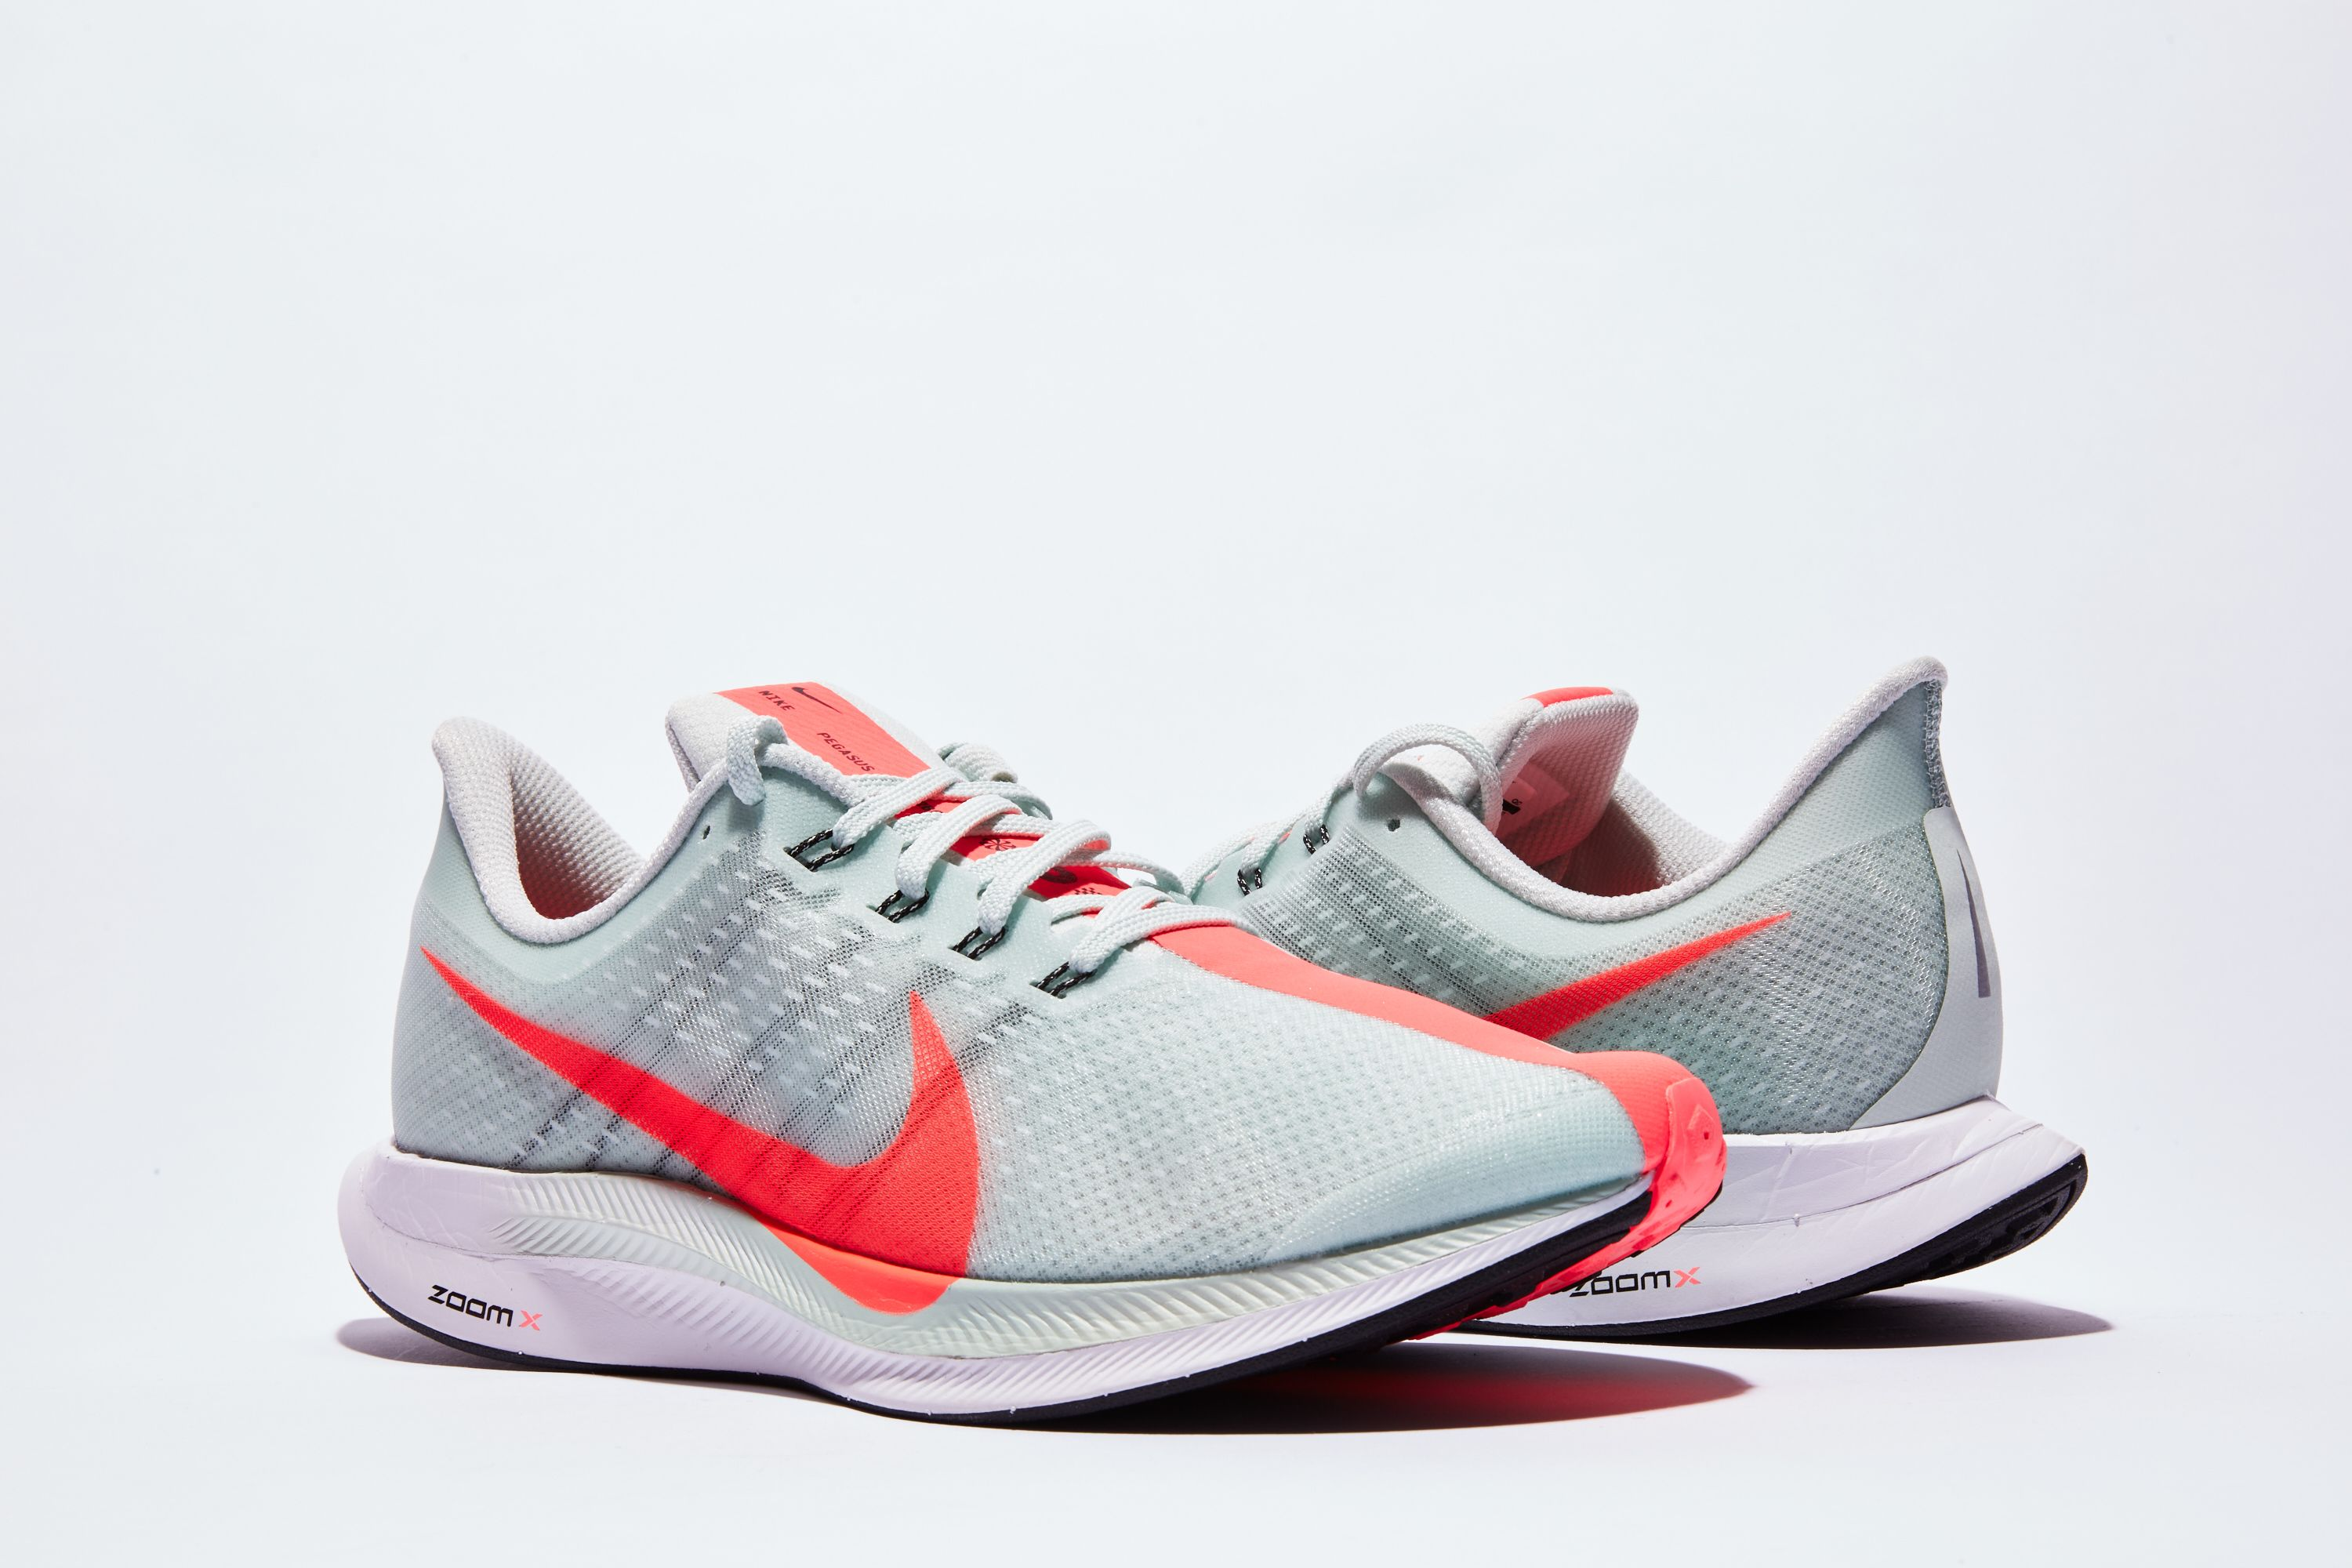 76a65116bf50 Nike Zoom Pegasus 35 Turbo - Running Shoes for Speed